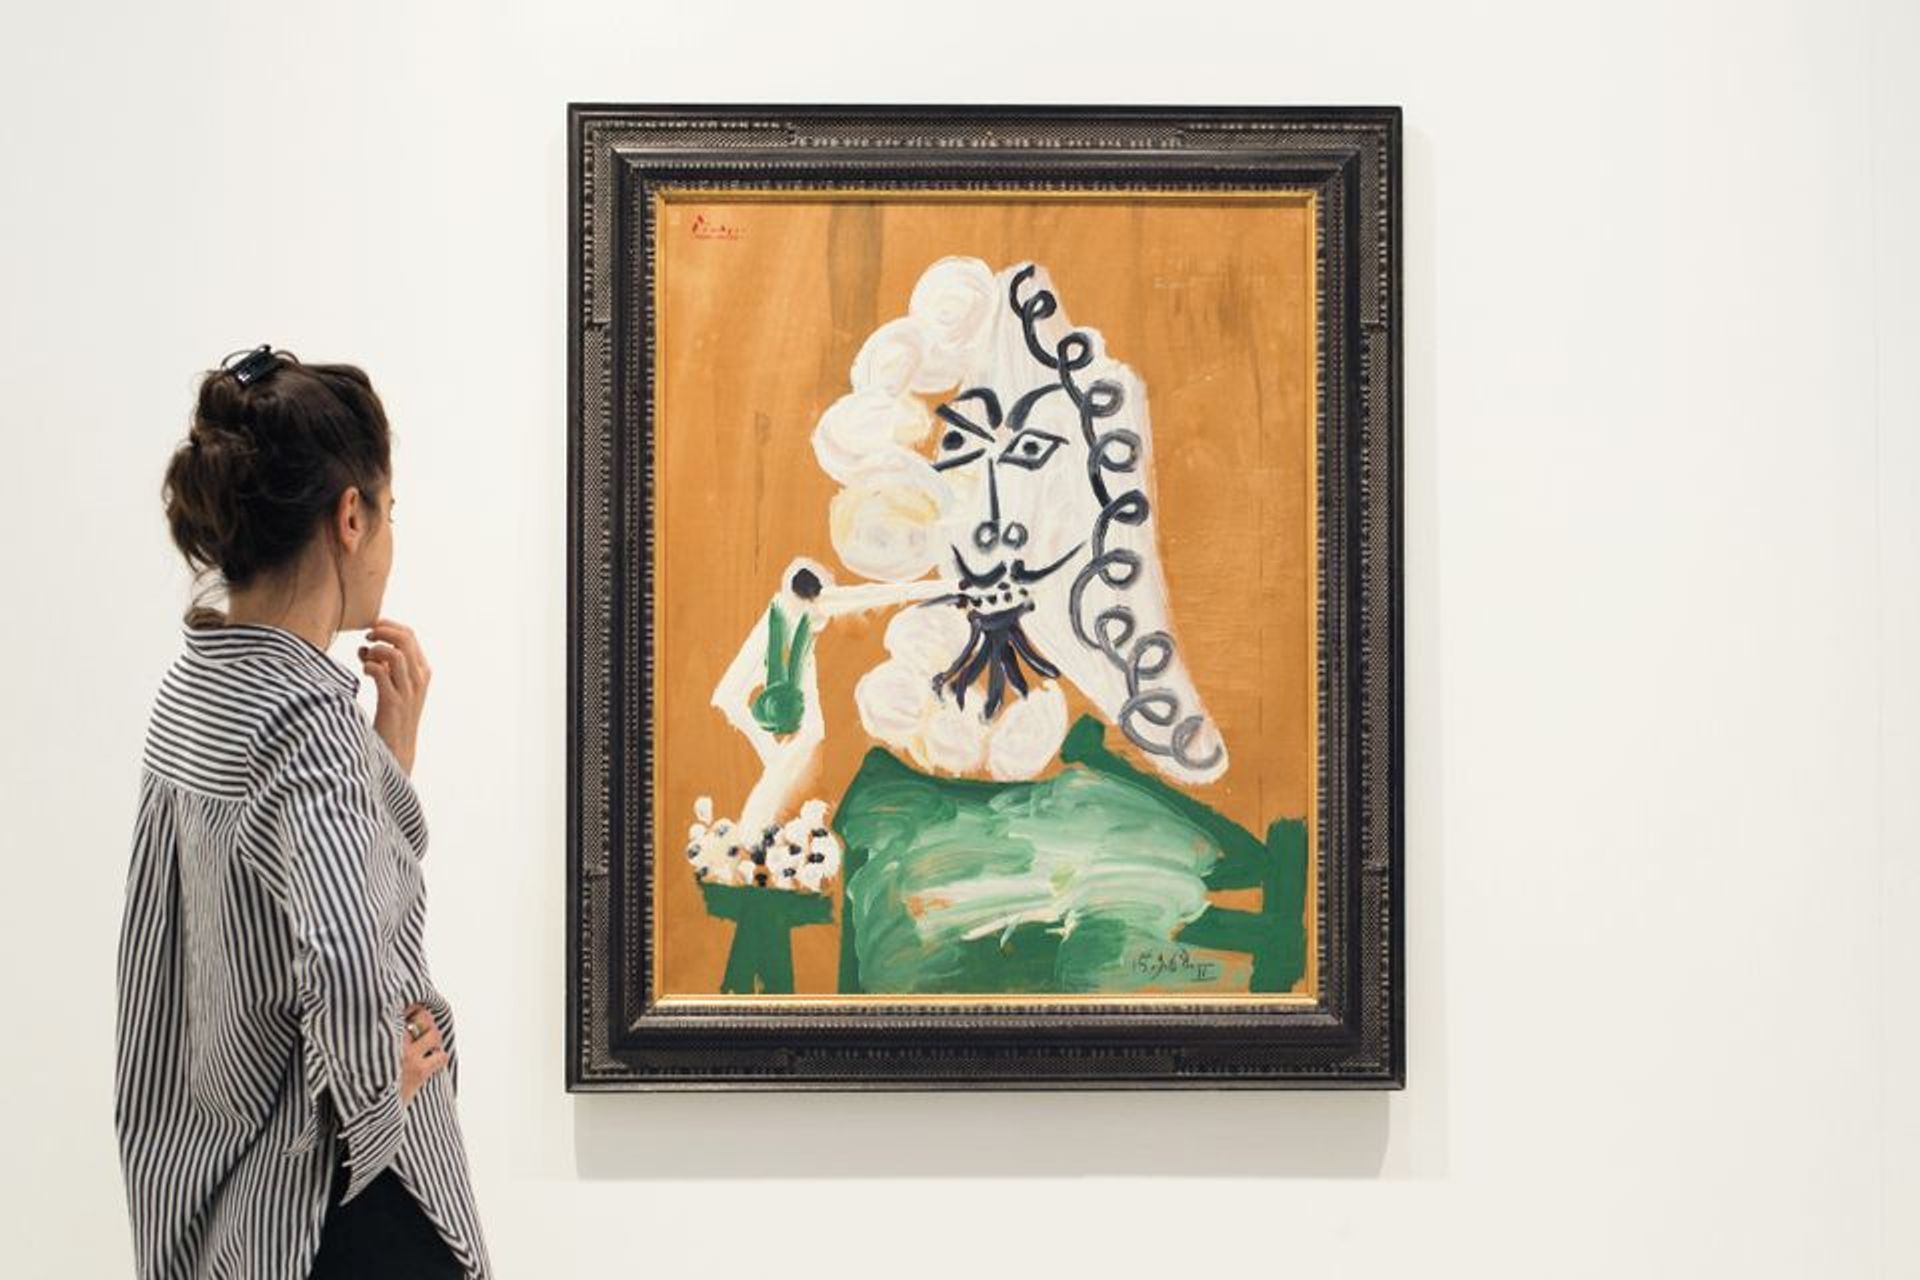 Pablo Picasso's Mousquetaire Buste (1968) at Art Basel in Hong Kong last year Photo: Liu Jingya